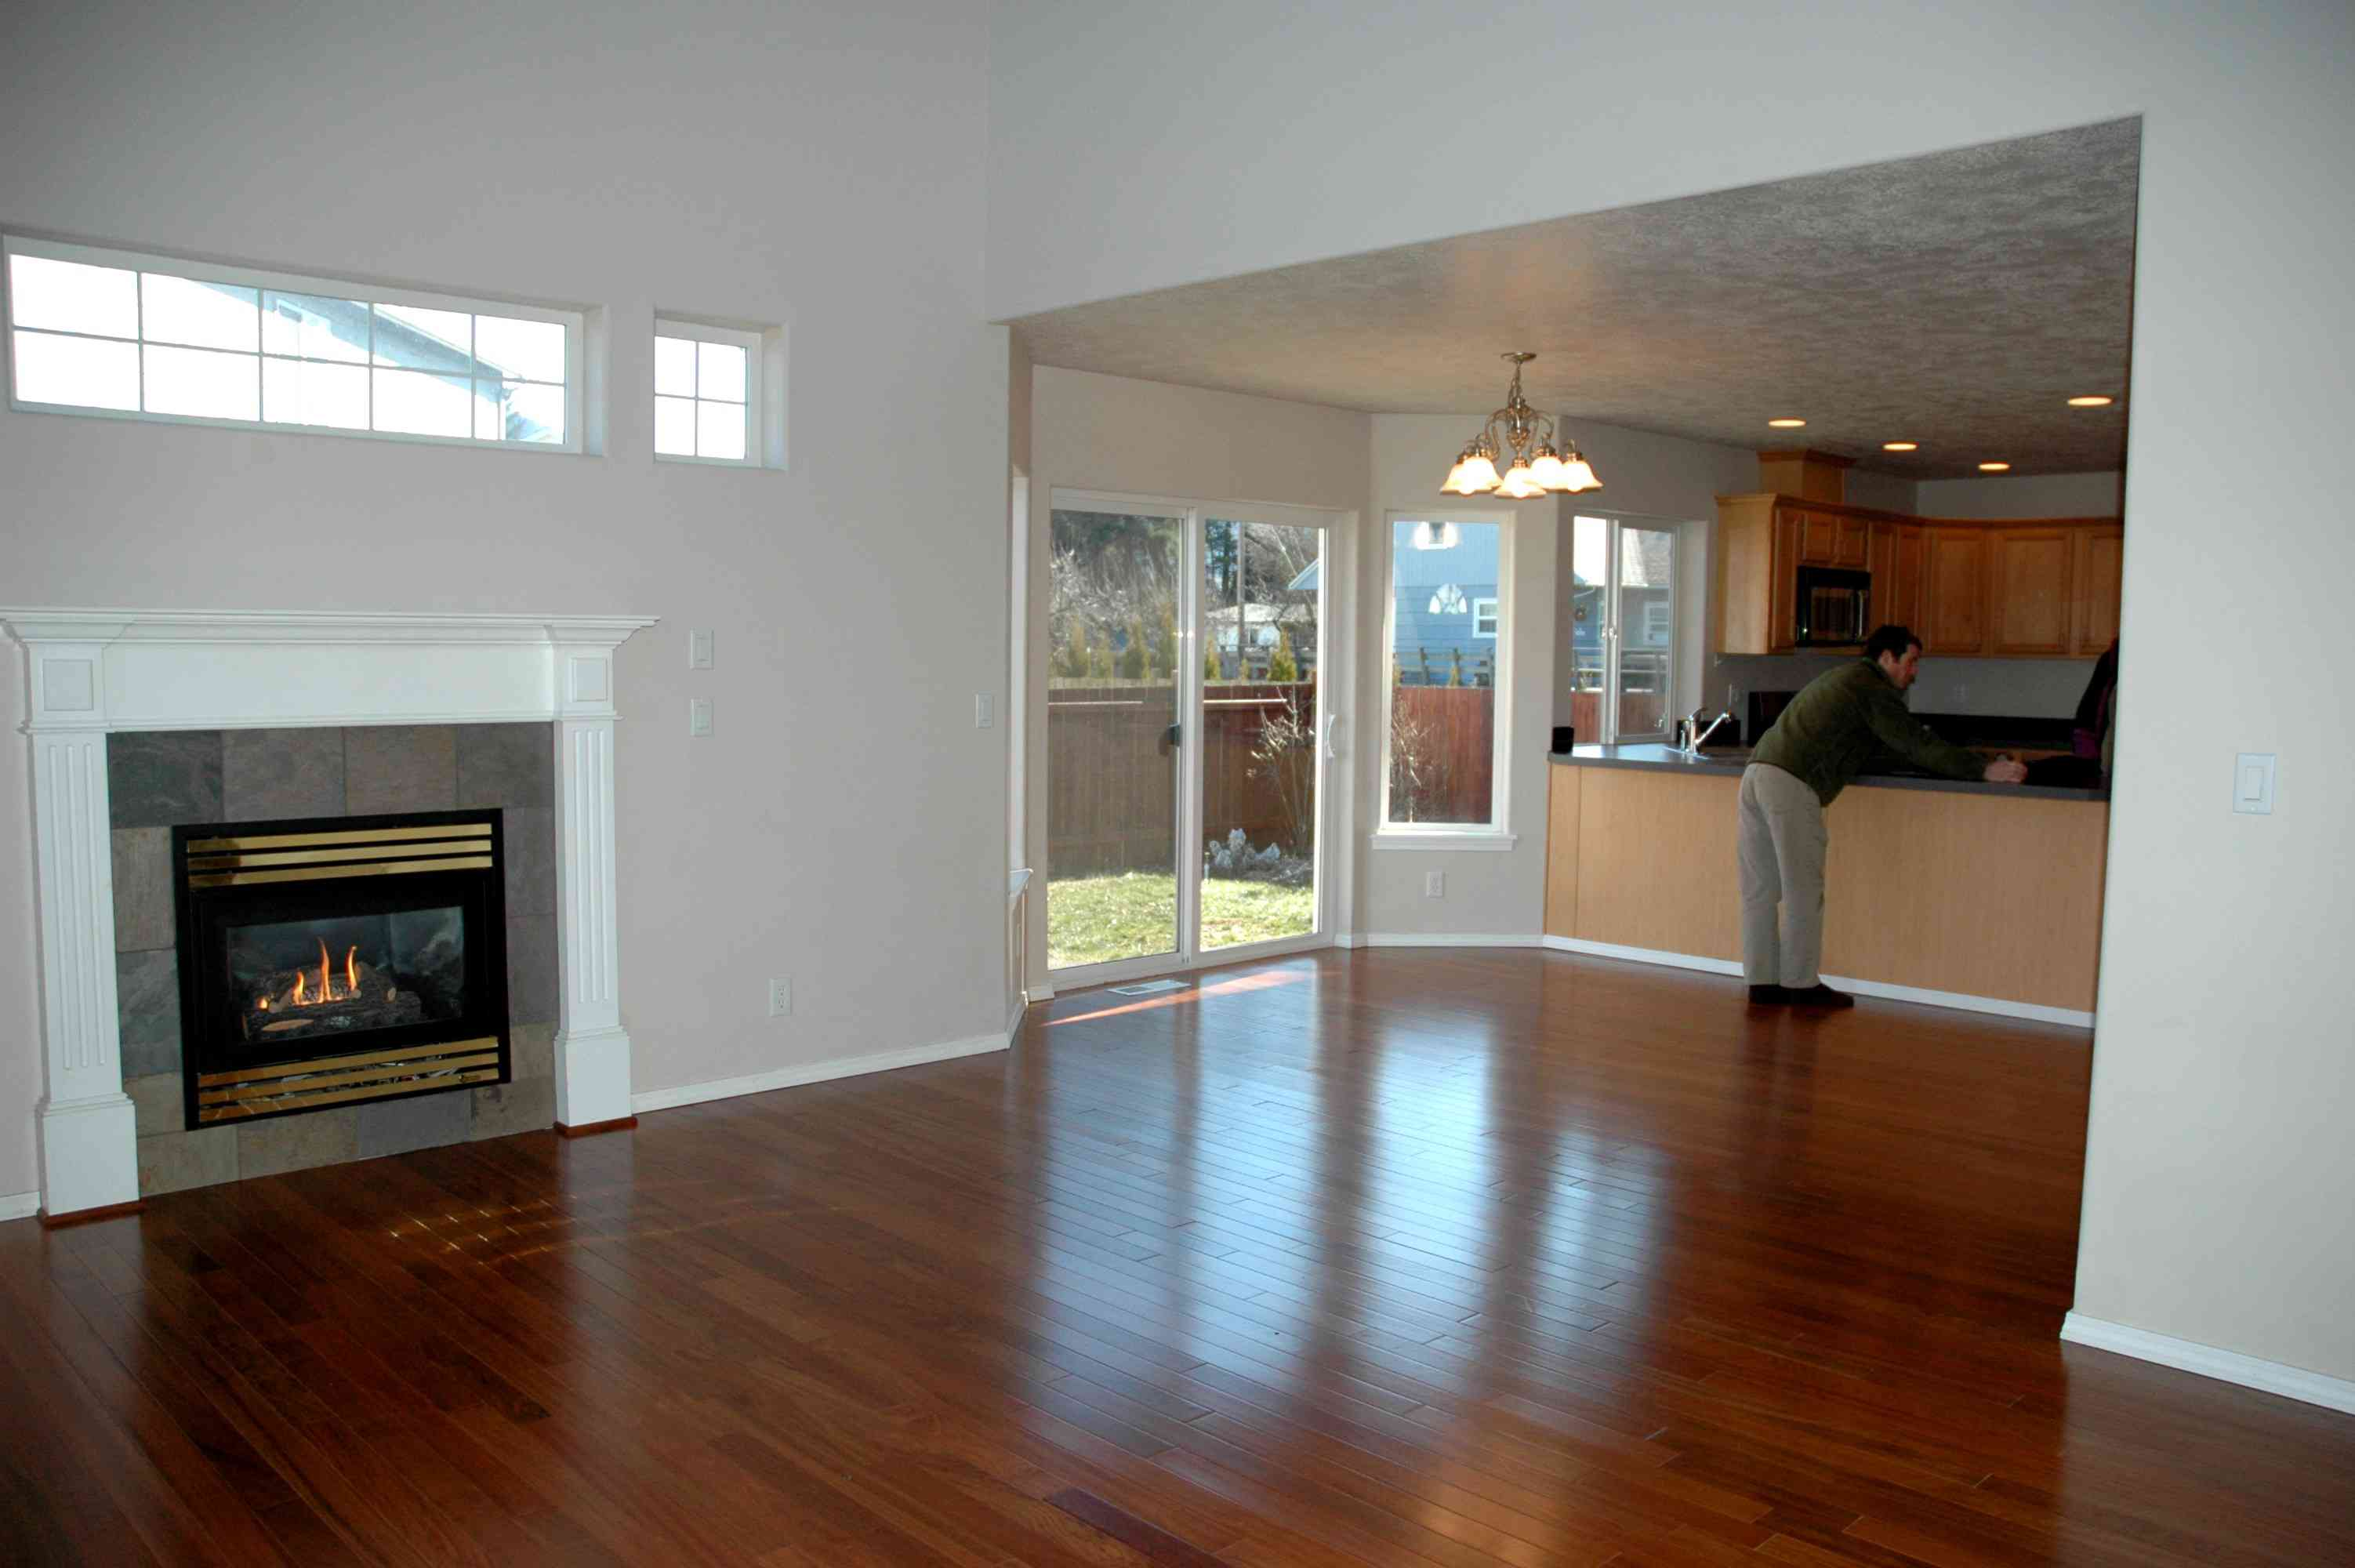 Brazilian cherry hardwood floors throughout a living room and dining room